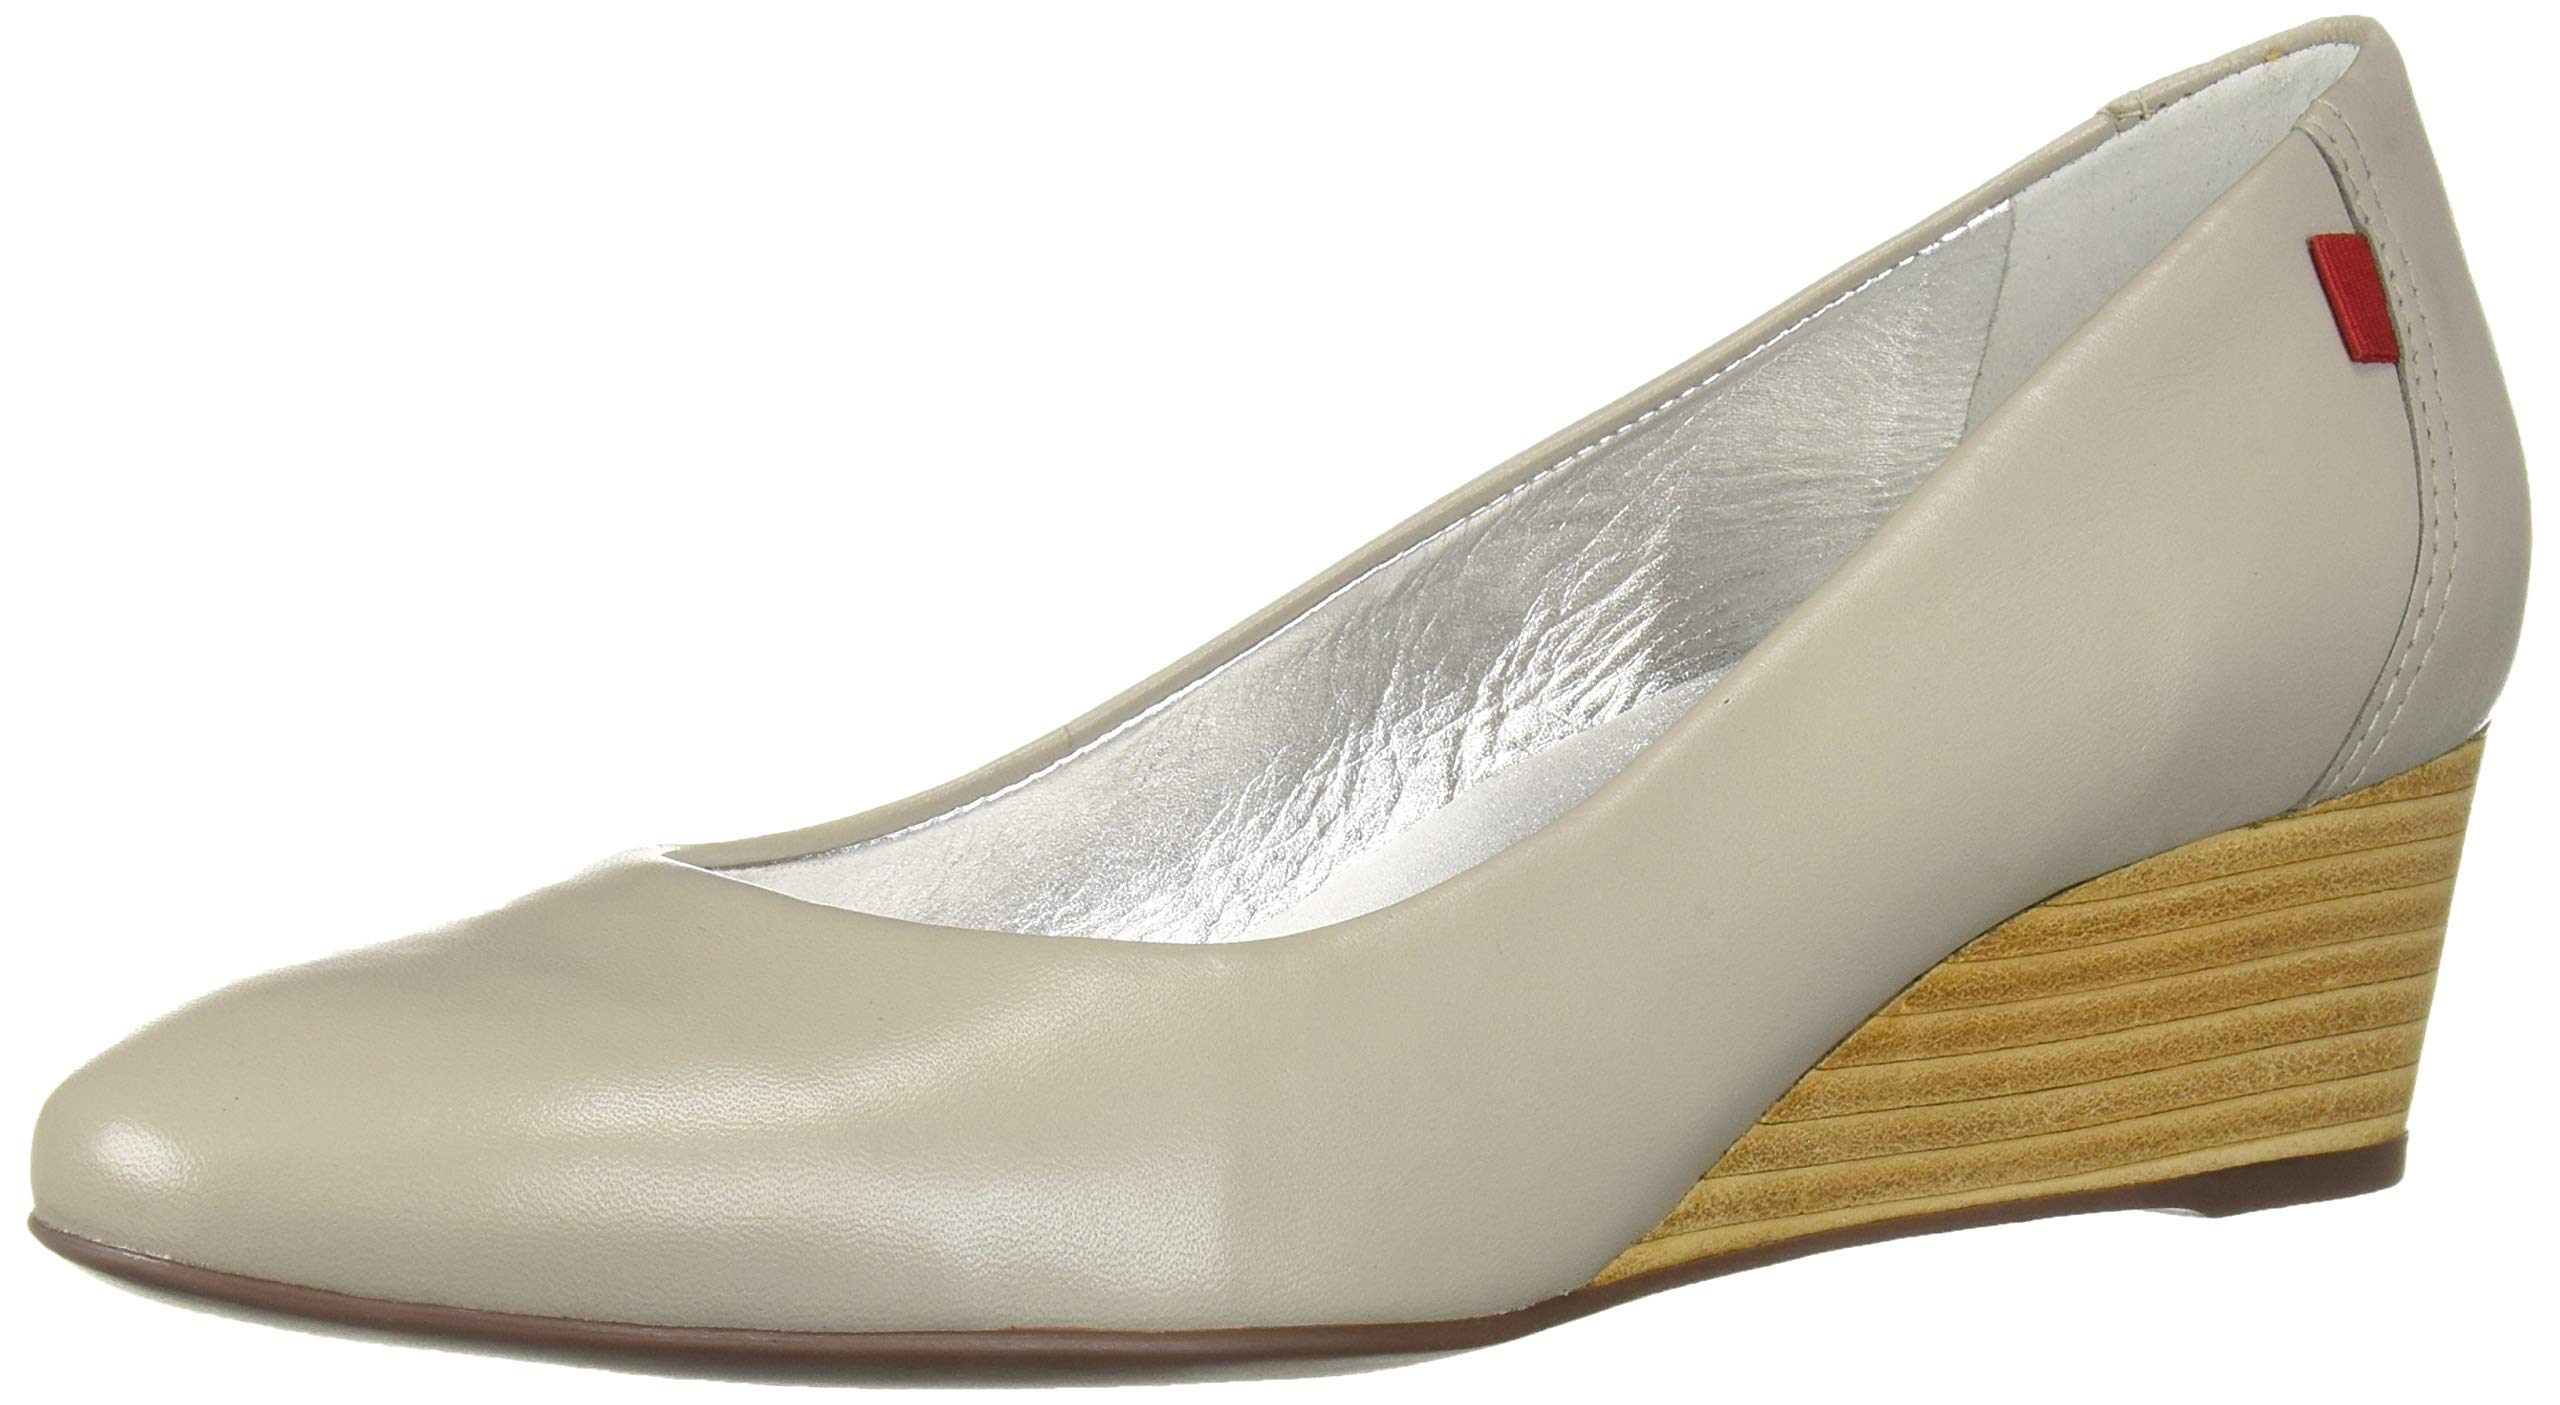 MARC JOSEPH NEW YORK Womens Leather Made in Brazil Cooper Wedge Pump, ash Grey Kid Nappa, 7 M US by MARC JOSEPH NEW YORK